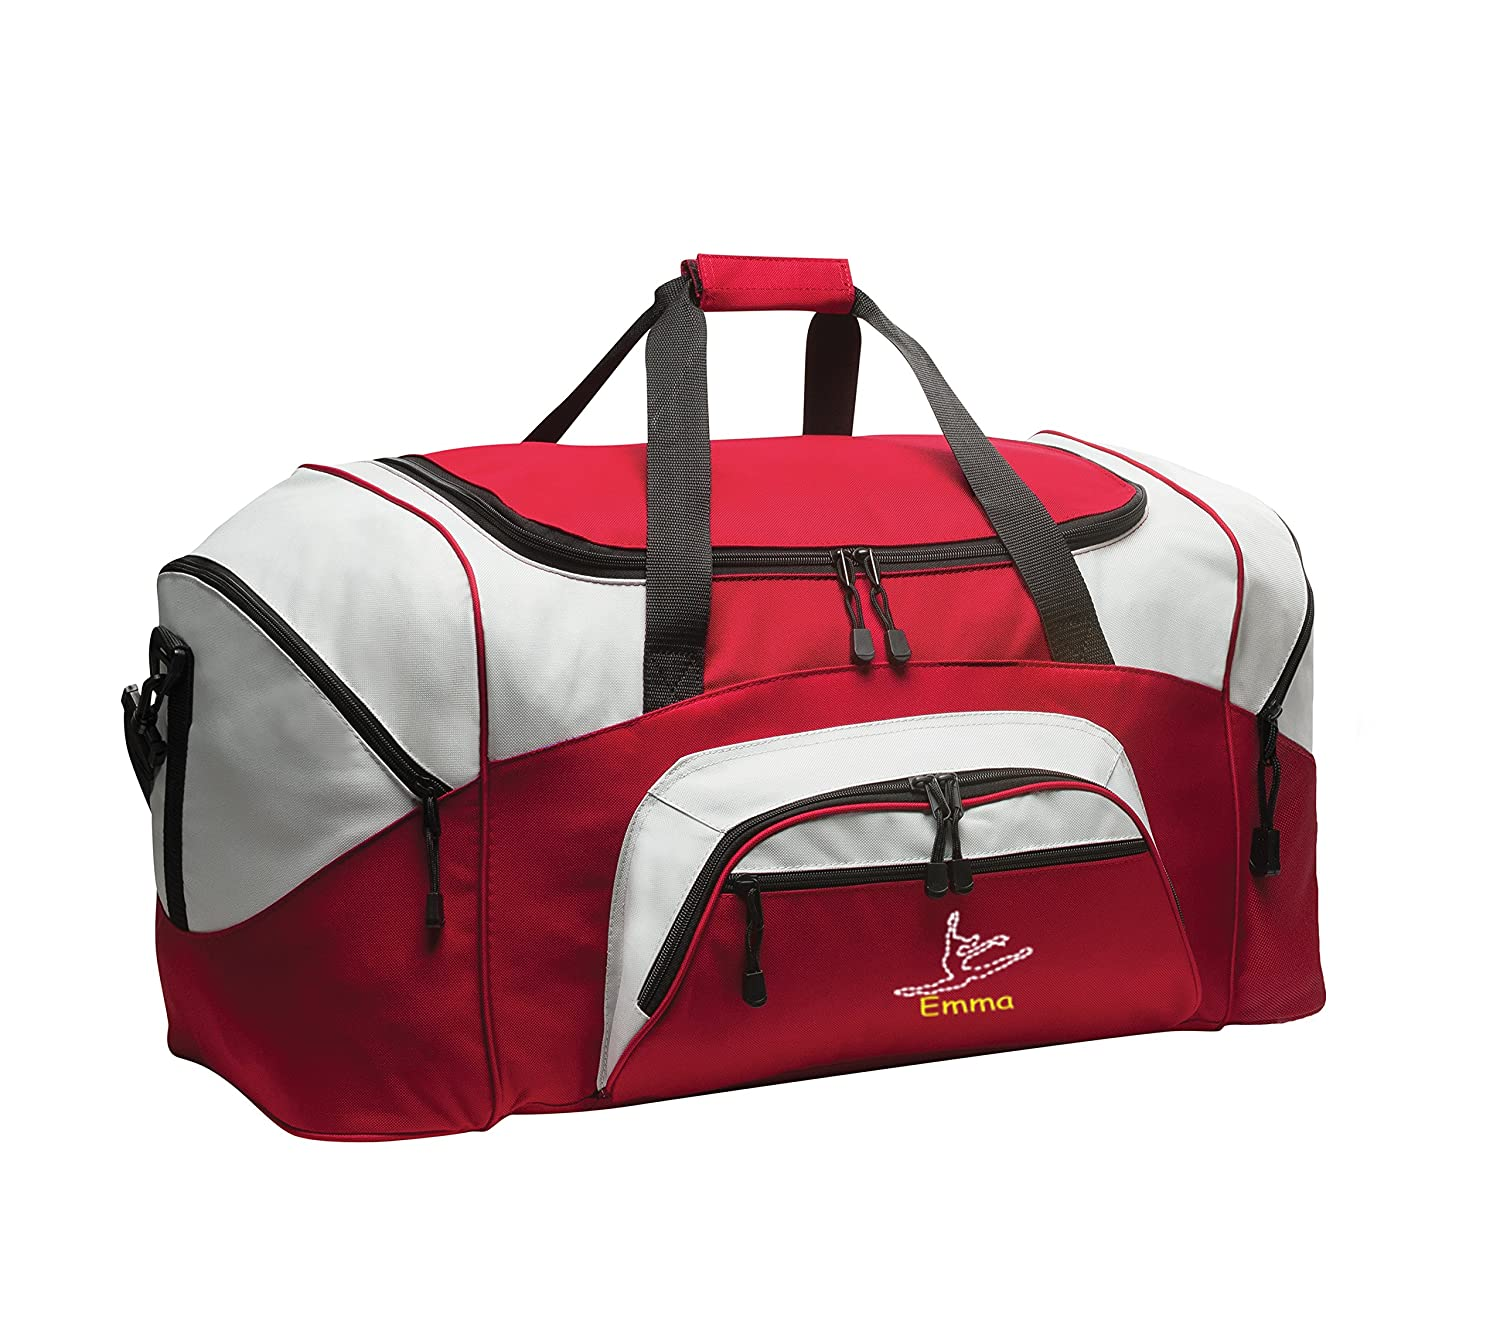 Personalized Dance Gym Bag all about me company Standard Colorblock Sport Duffel Bag